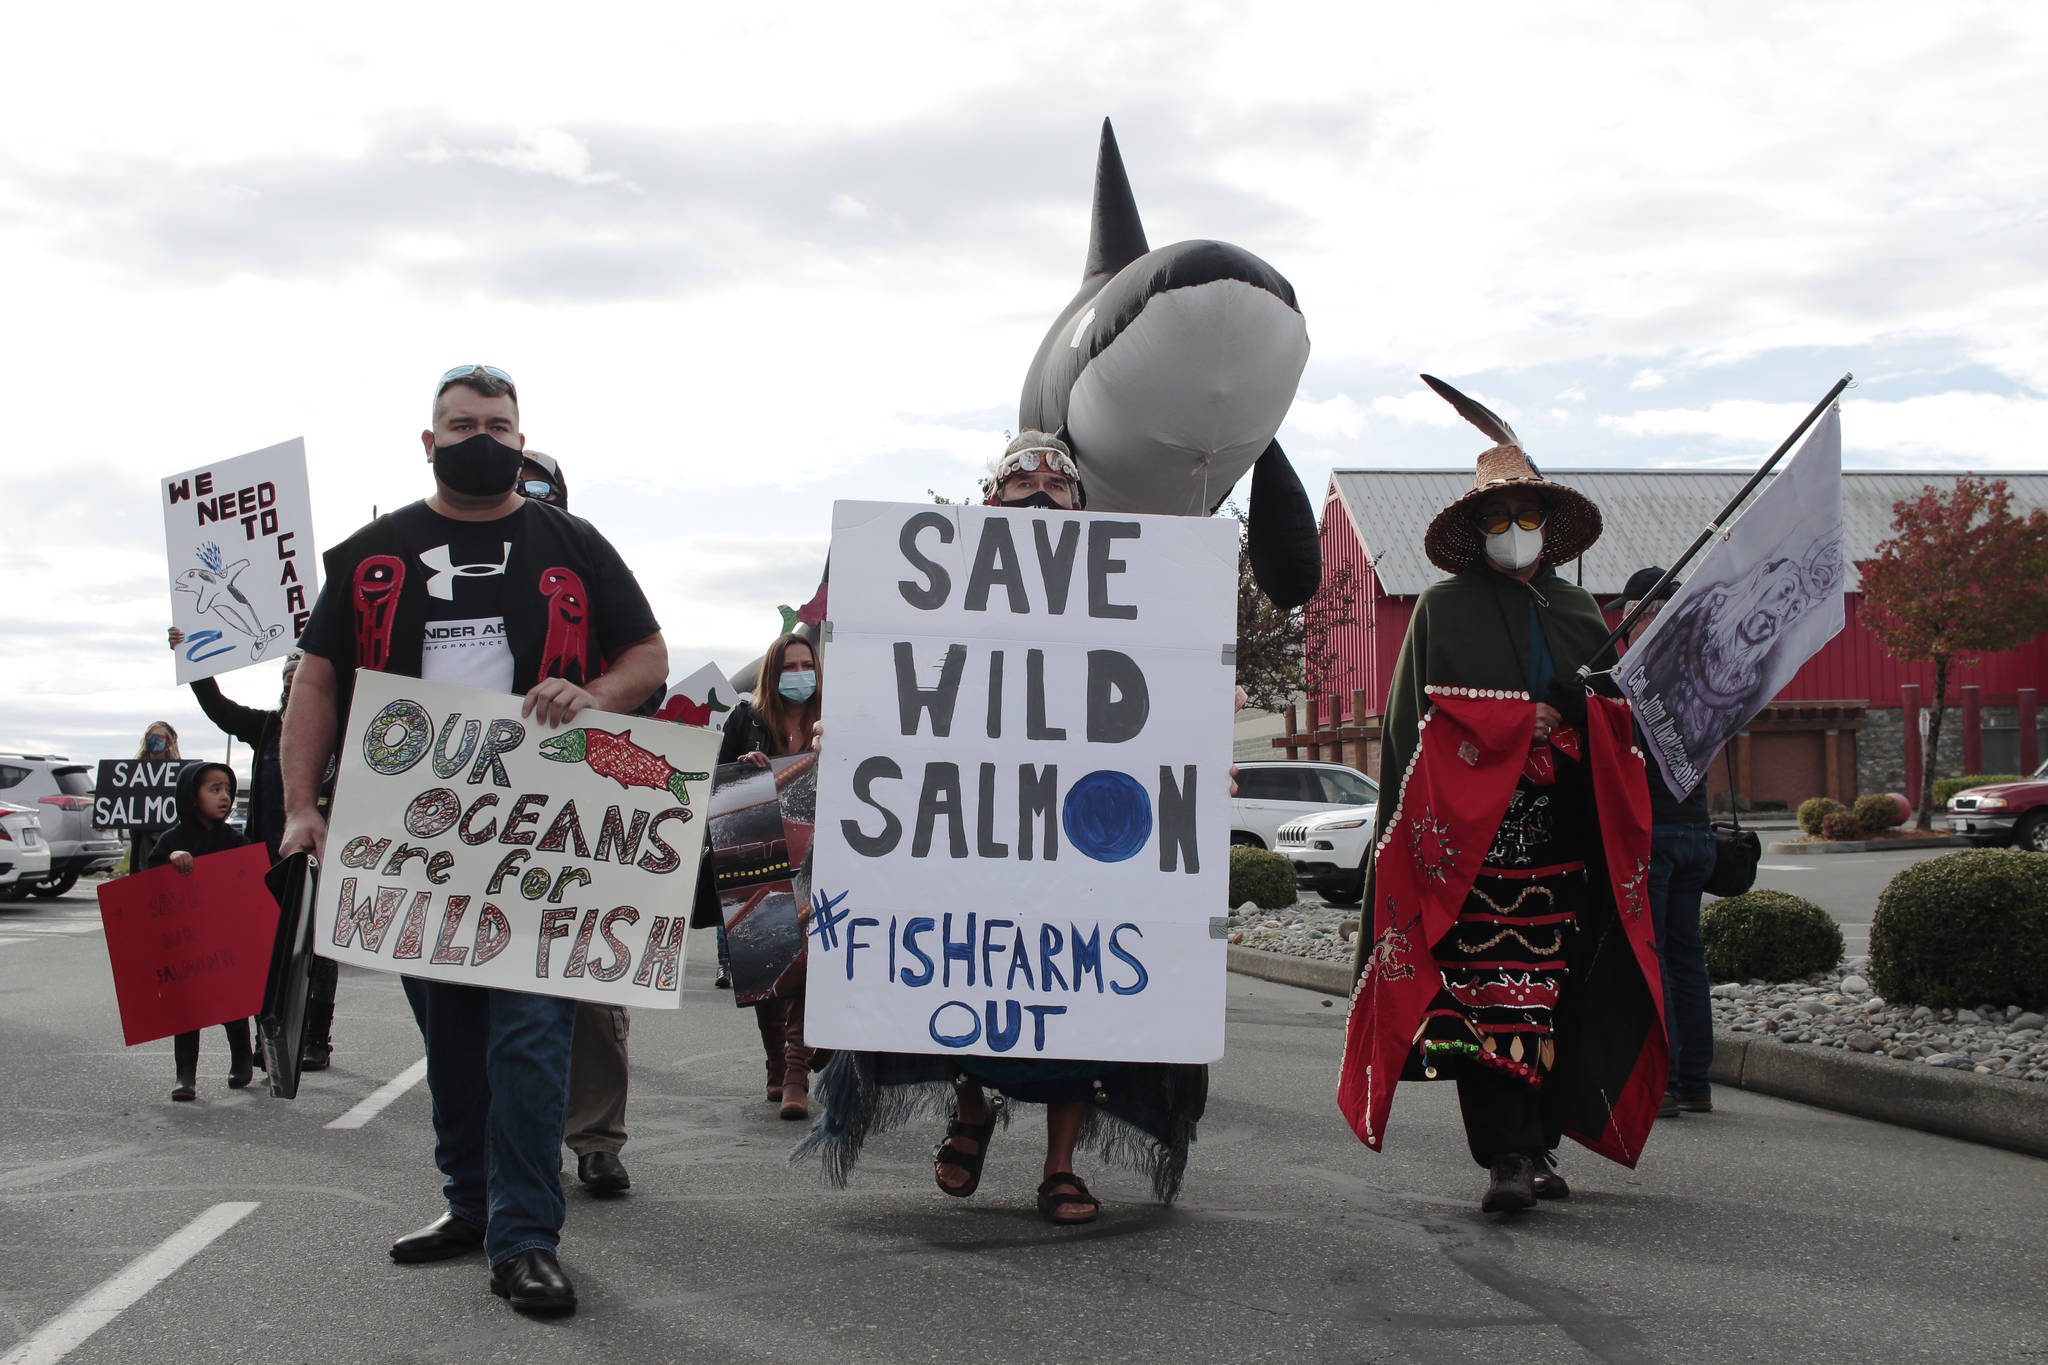 A Photo from Sept. 2020, when First Nations and wild salmon advocates took to the streets in Campbell River to protest against open-pen fish farms in B.C.'s waters. On Dec. 17, federal fisheries minister Bernadette Jordan announced her decision to phase out 19 fish farms from Discovery Islands. (Marc Kitteringham/Campbell River Mirror)